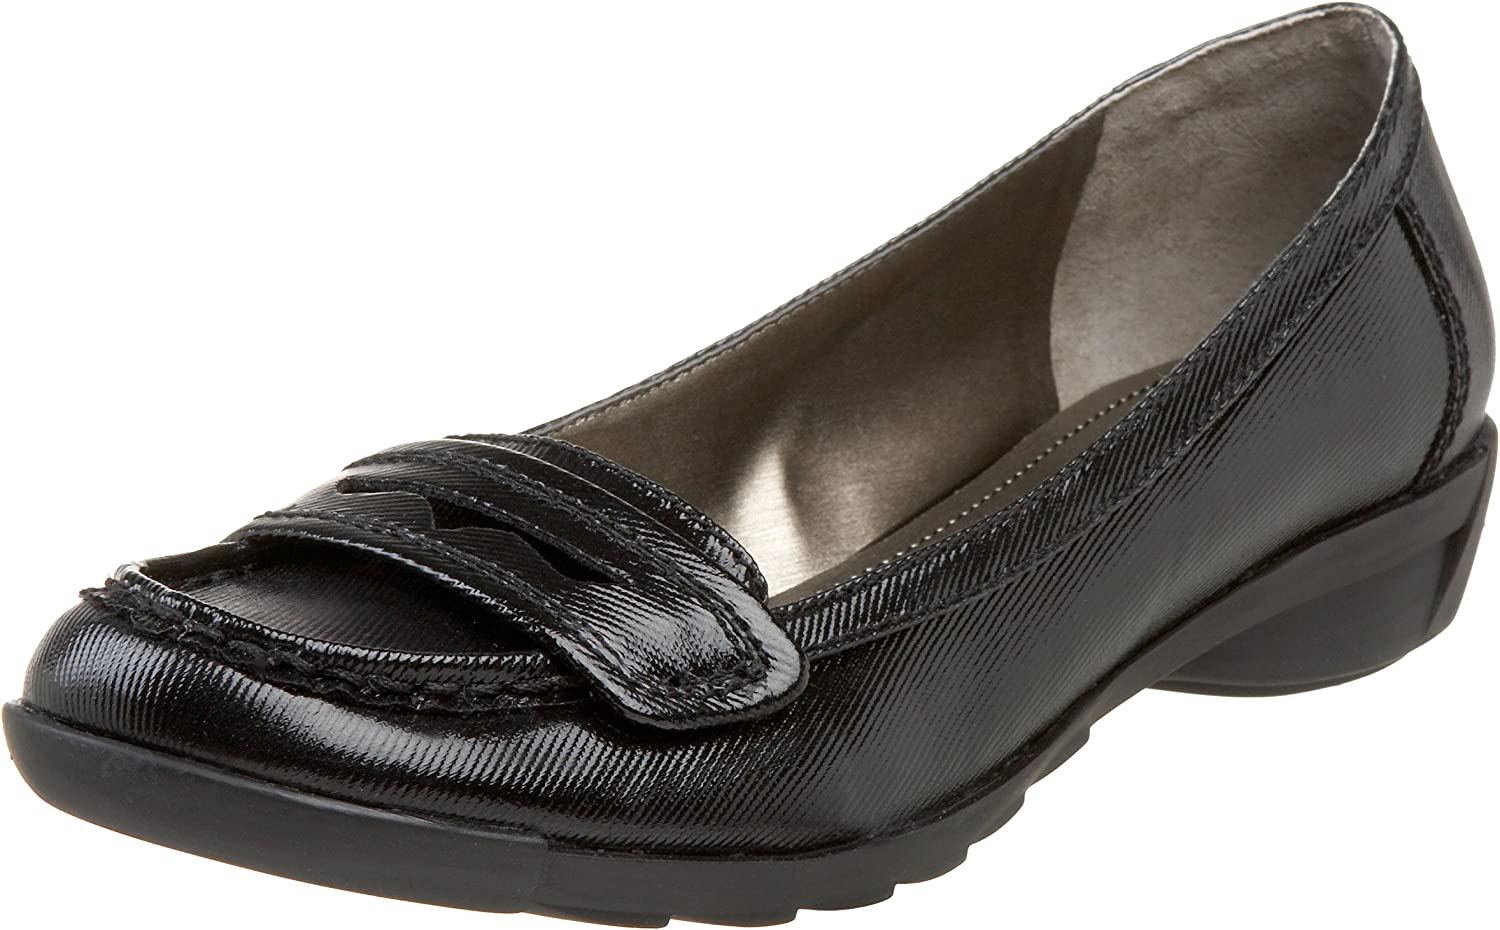 Kenneth Cole REACTION Women's Ace Girl Penny Loafer